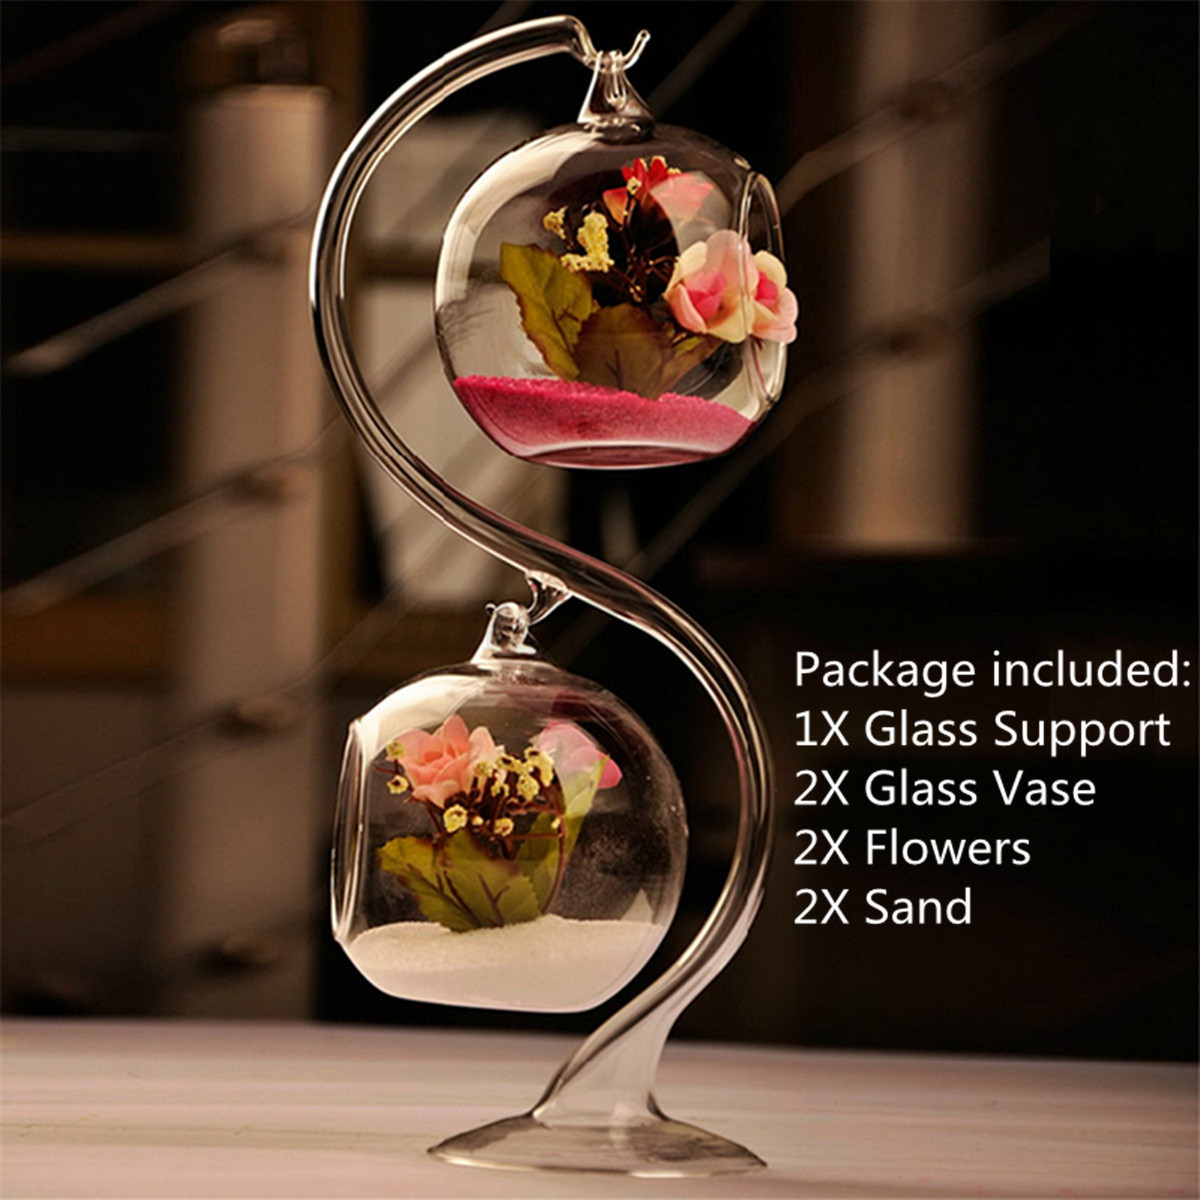 S-Type-Hanging-Glass-Ball-Vase-Support-Terrarium-Container-Flowers-Plant-Holder